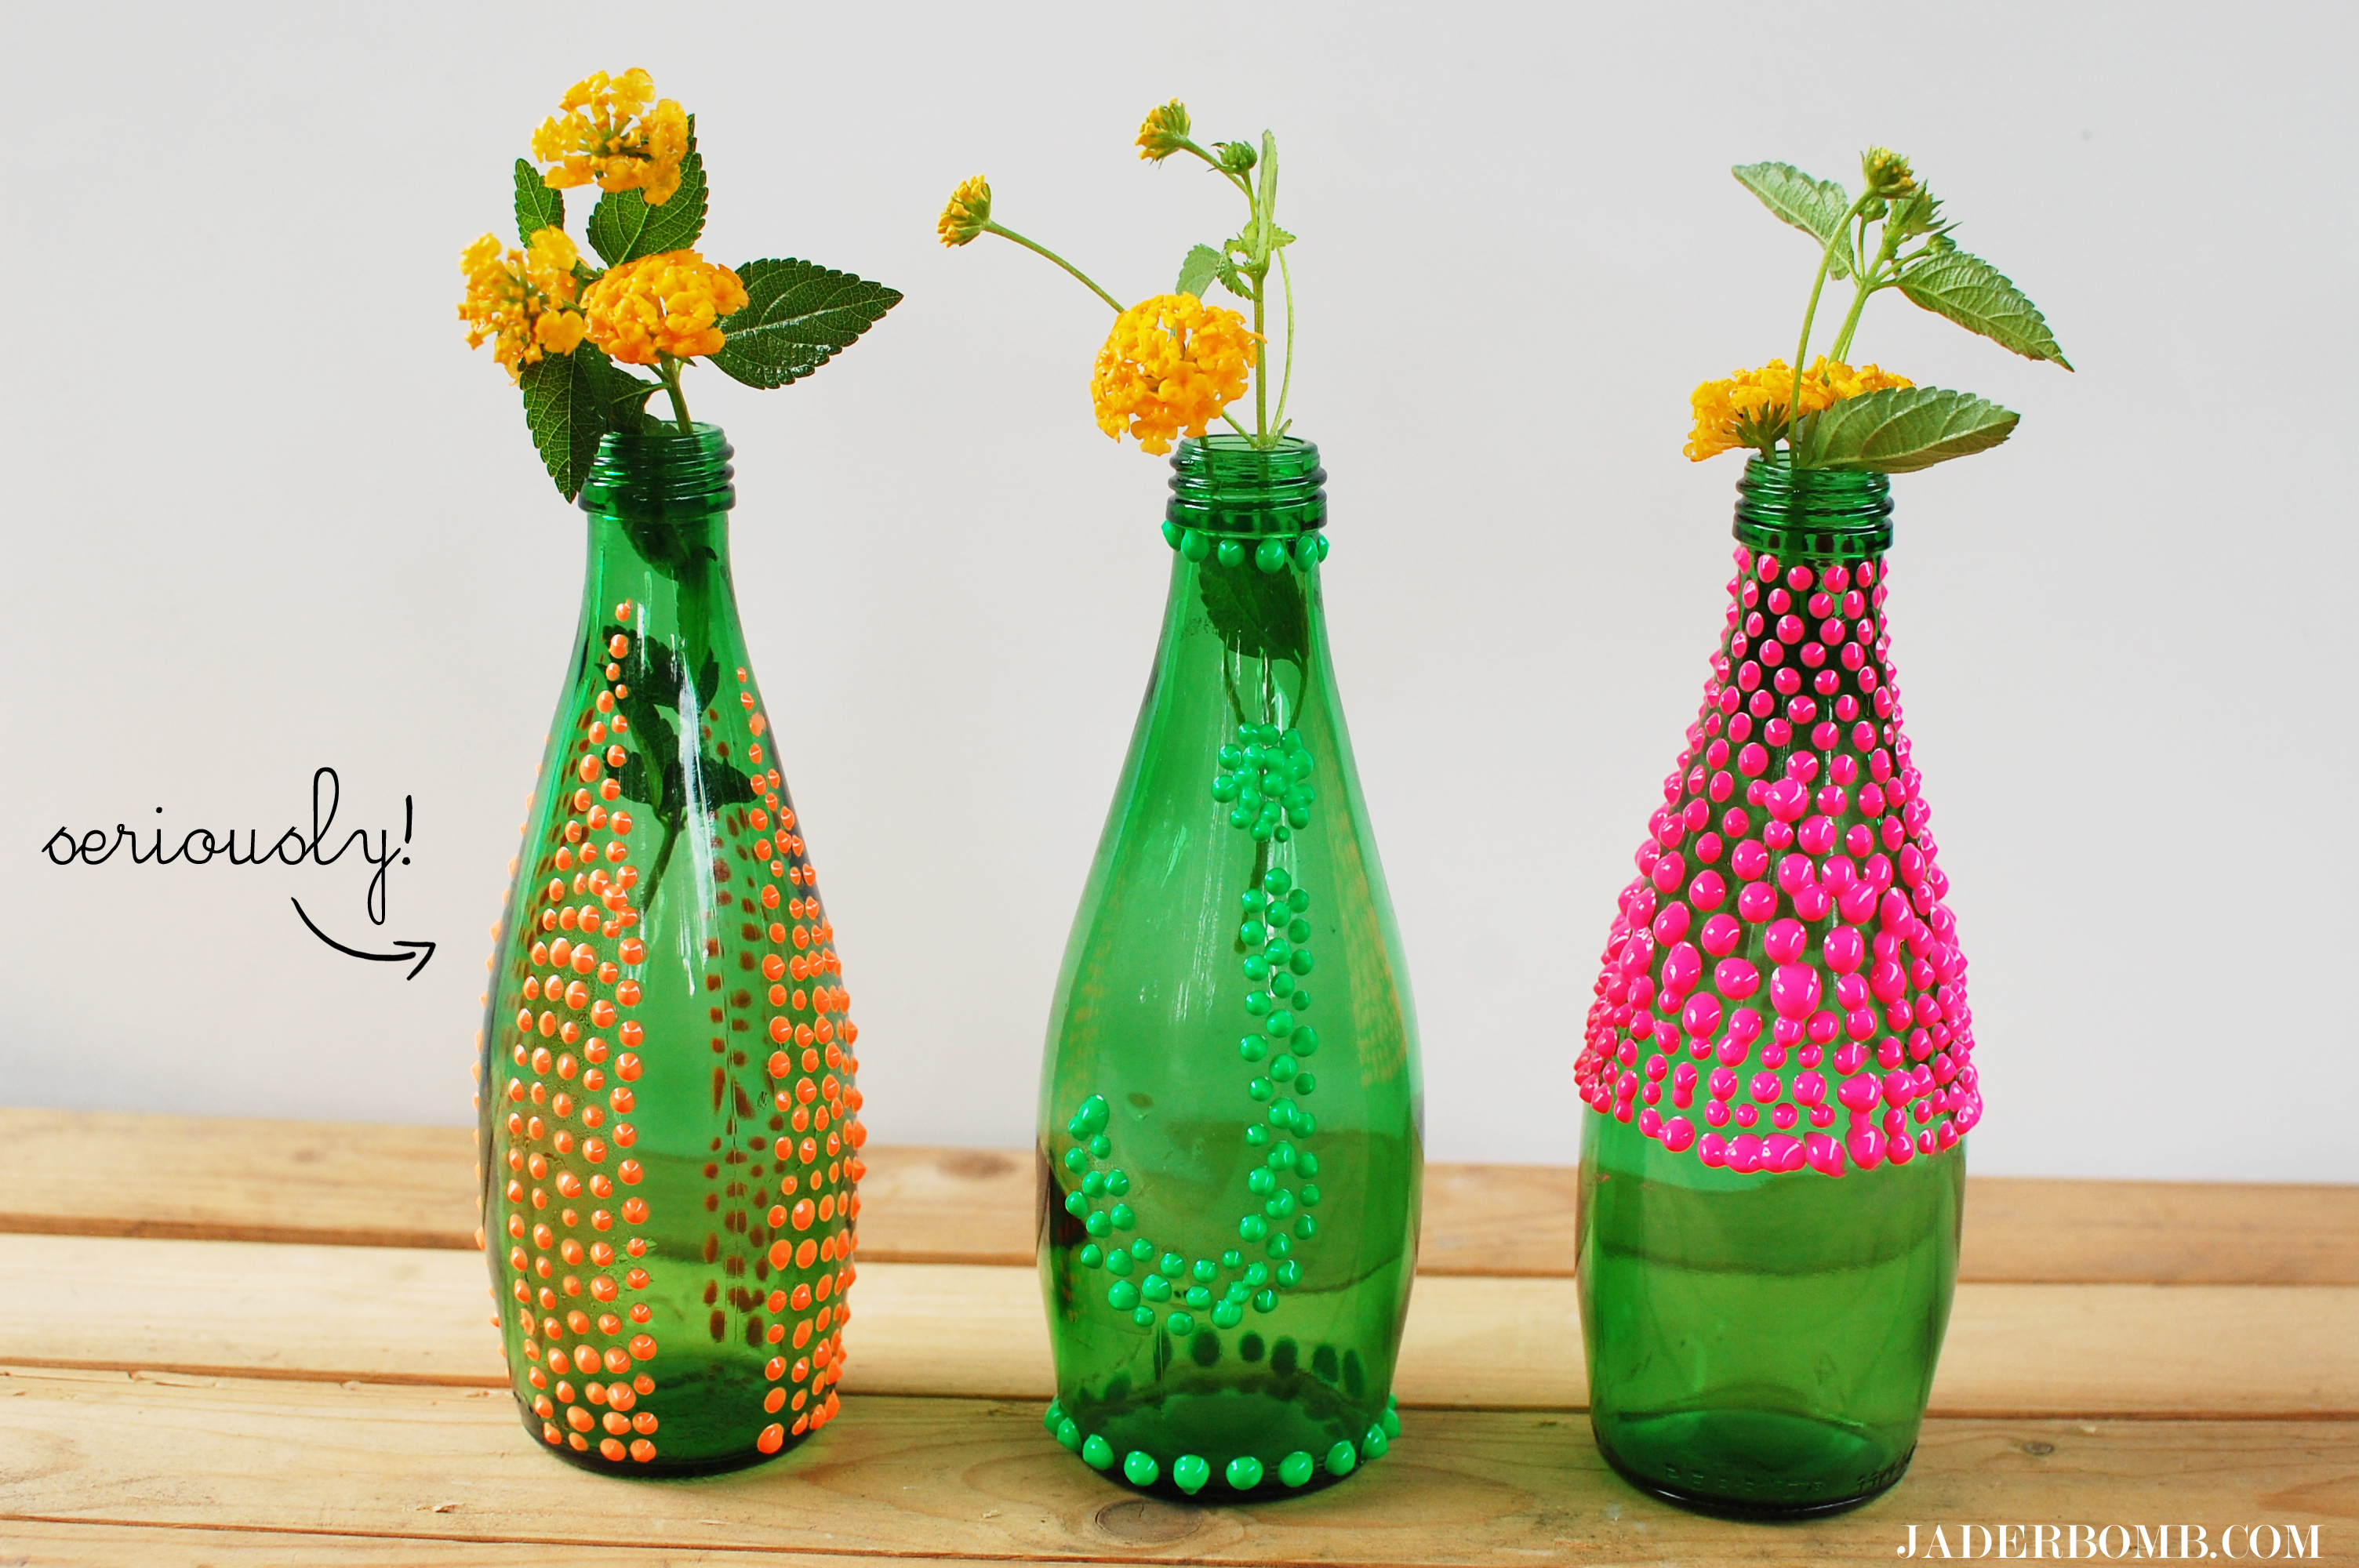 Puffy paint vases diy jaderbomb for Crafts to make with glass jars